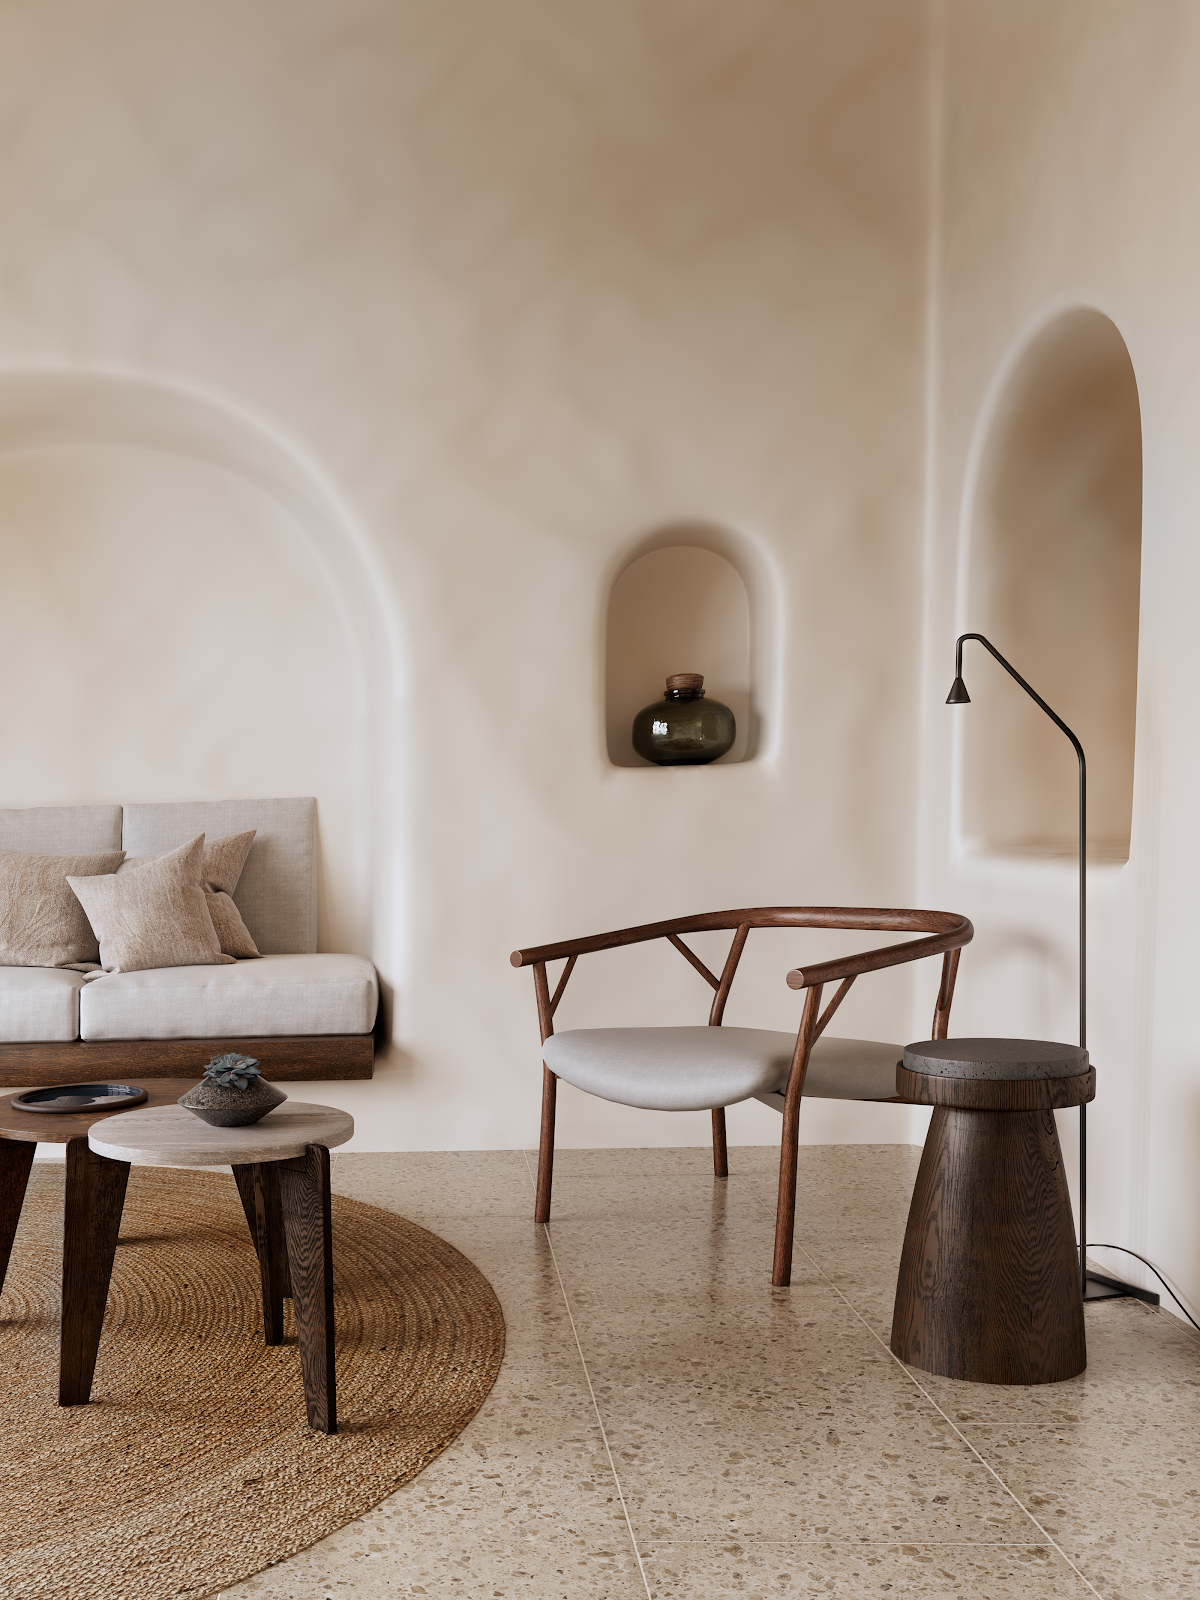 The New Mediterranean interior style inspiration